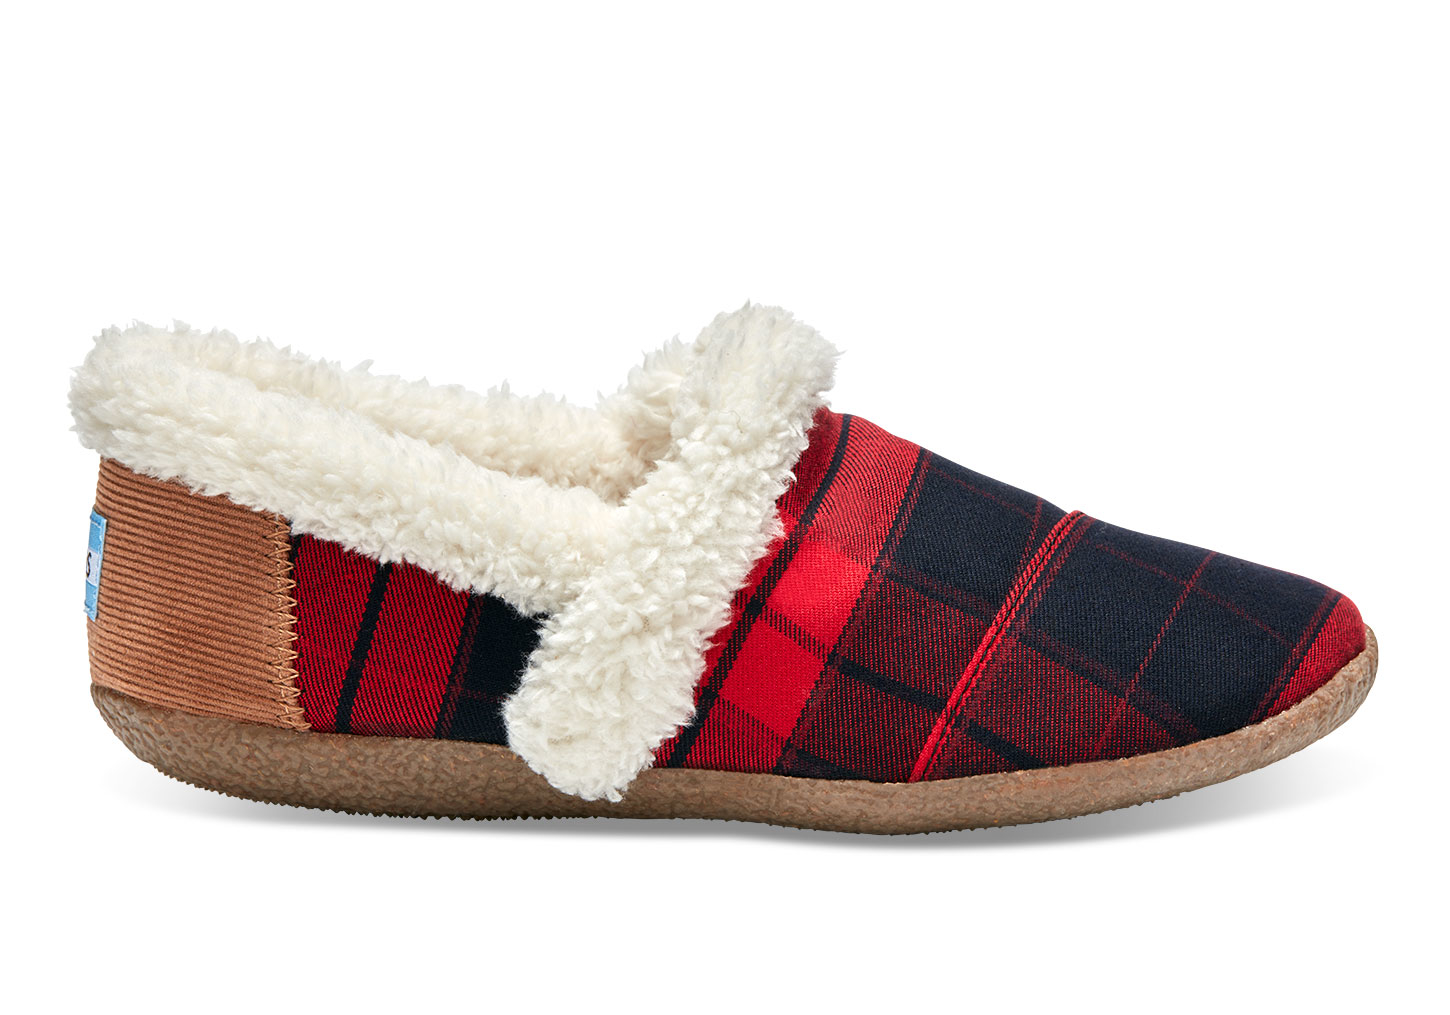 If you're looking for cosy footwear to keep your toes warm around the house, then you're sure to find something suitable among our selection of slippers for women.